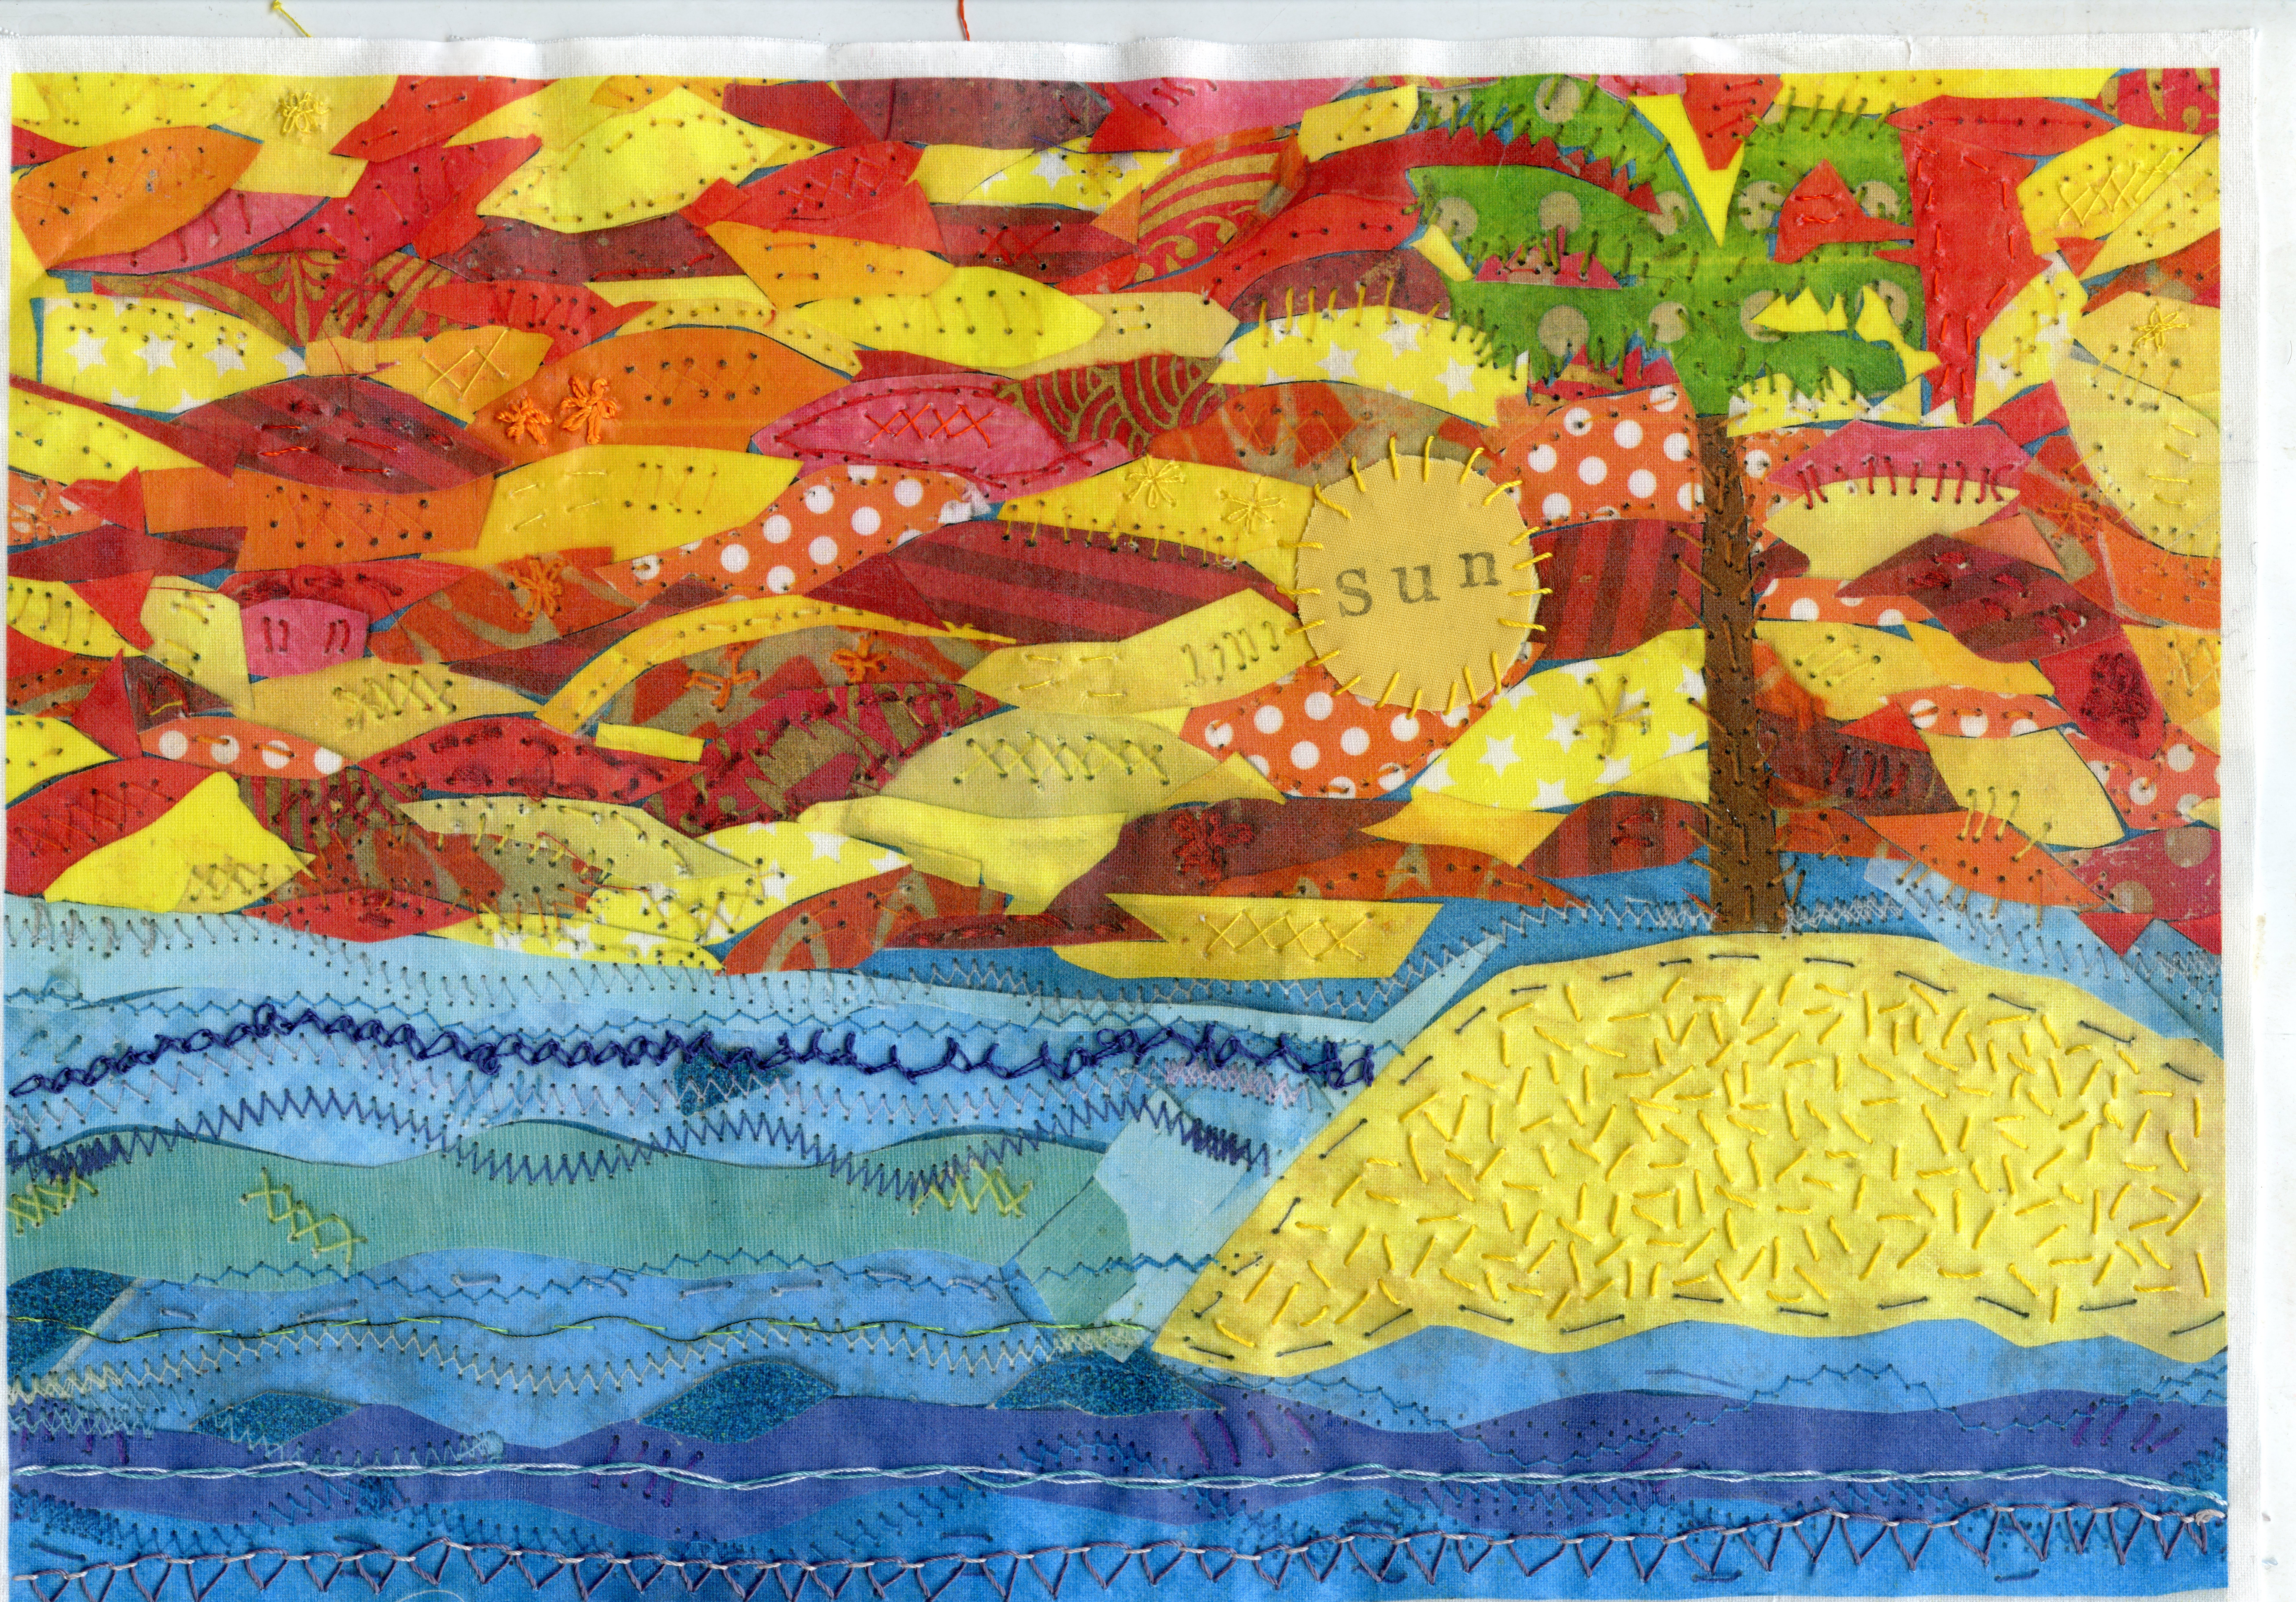 Sunset paper stitch collage by Sally Hirst